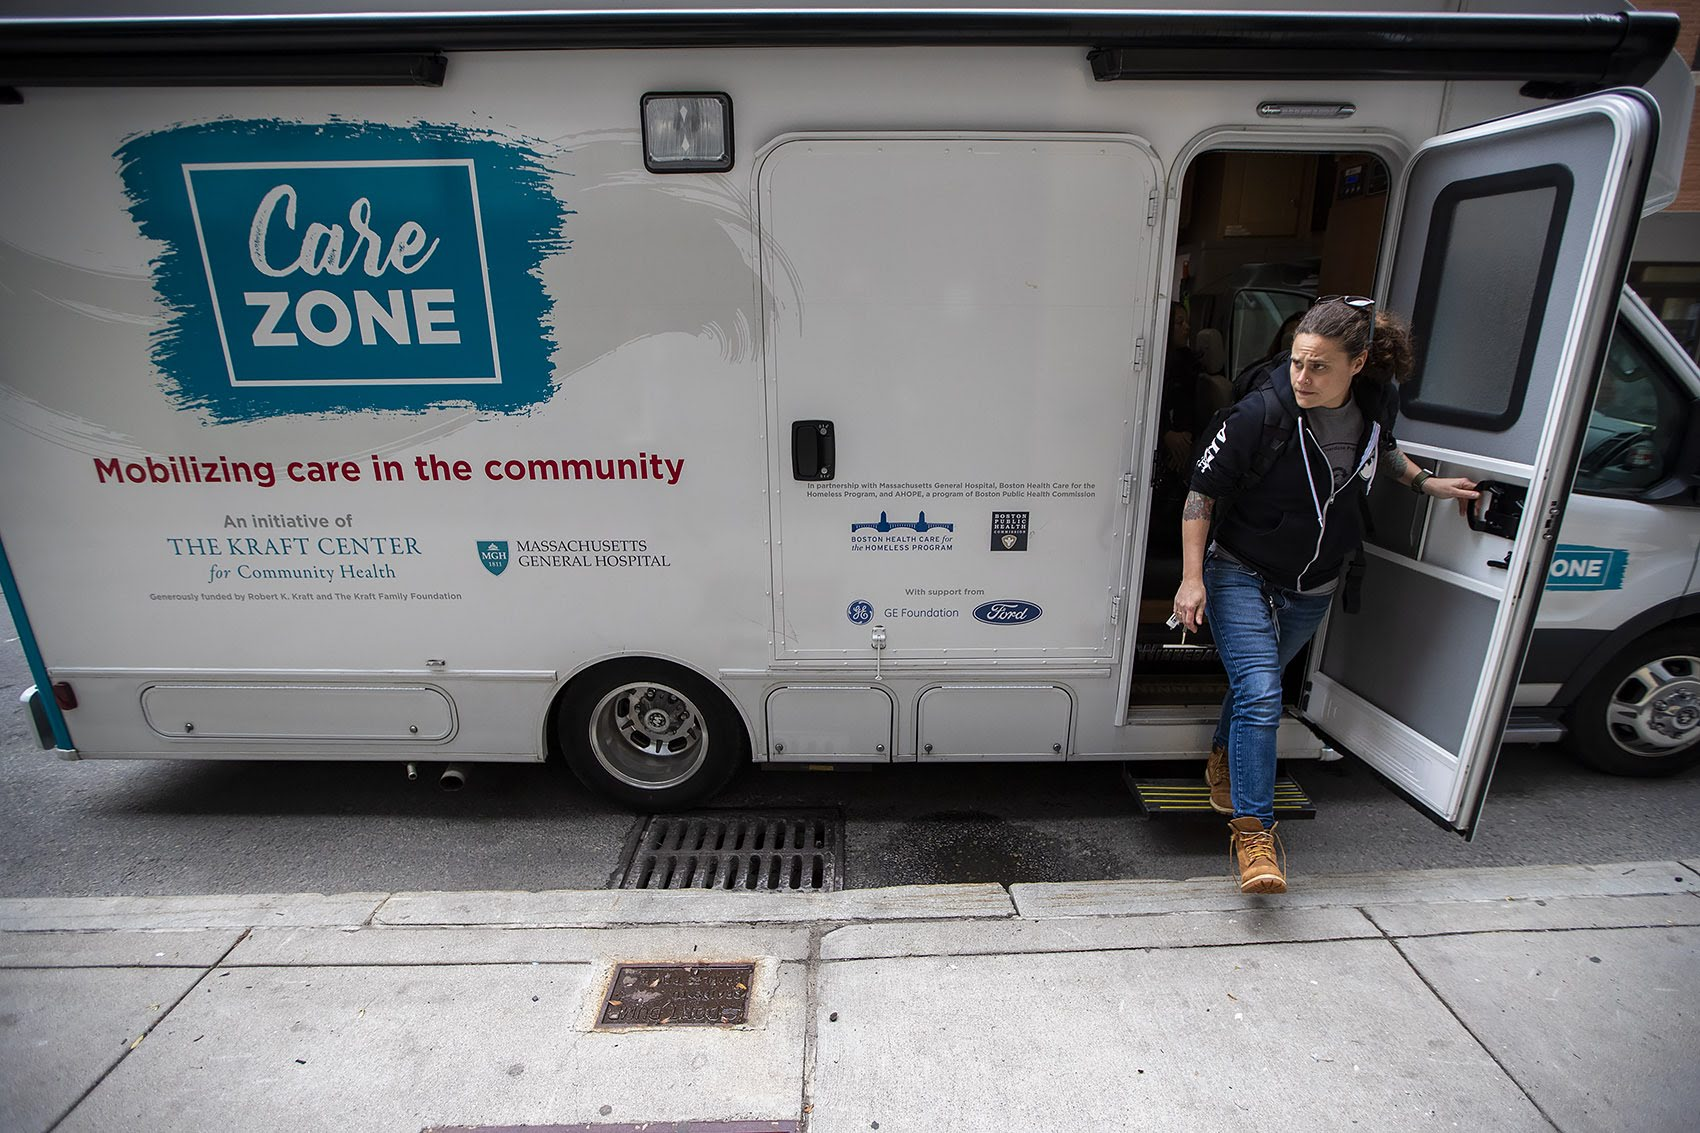 The Van Vs  An Opioid Addiction: Taking Treatment To The